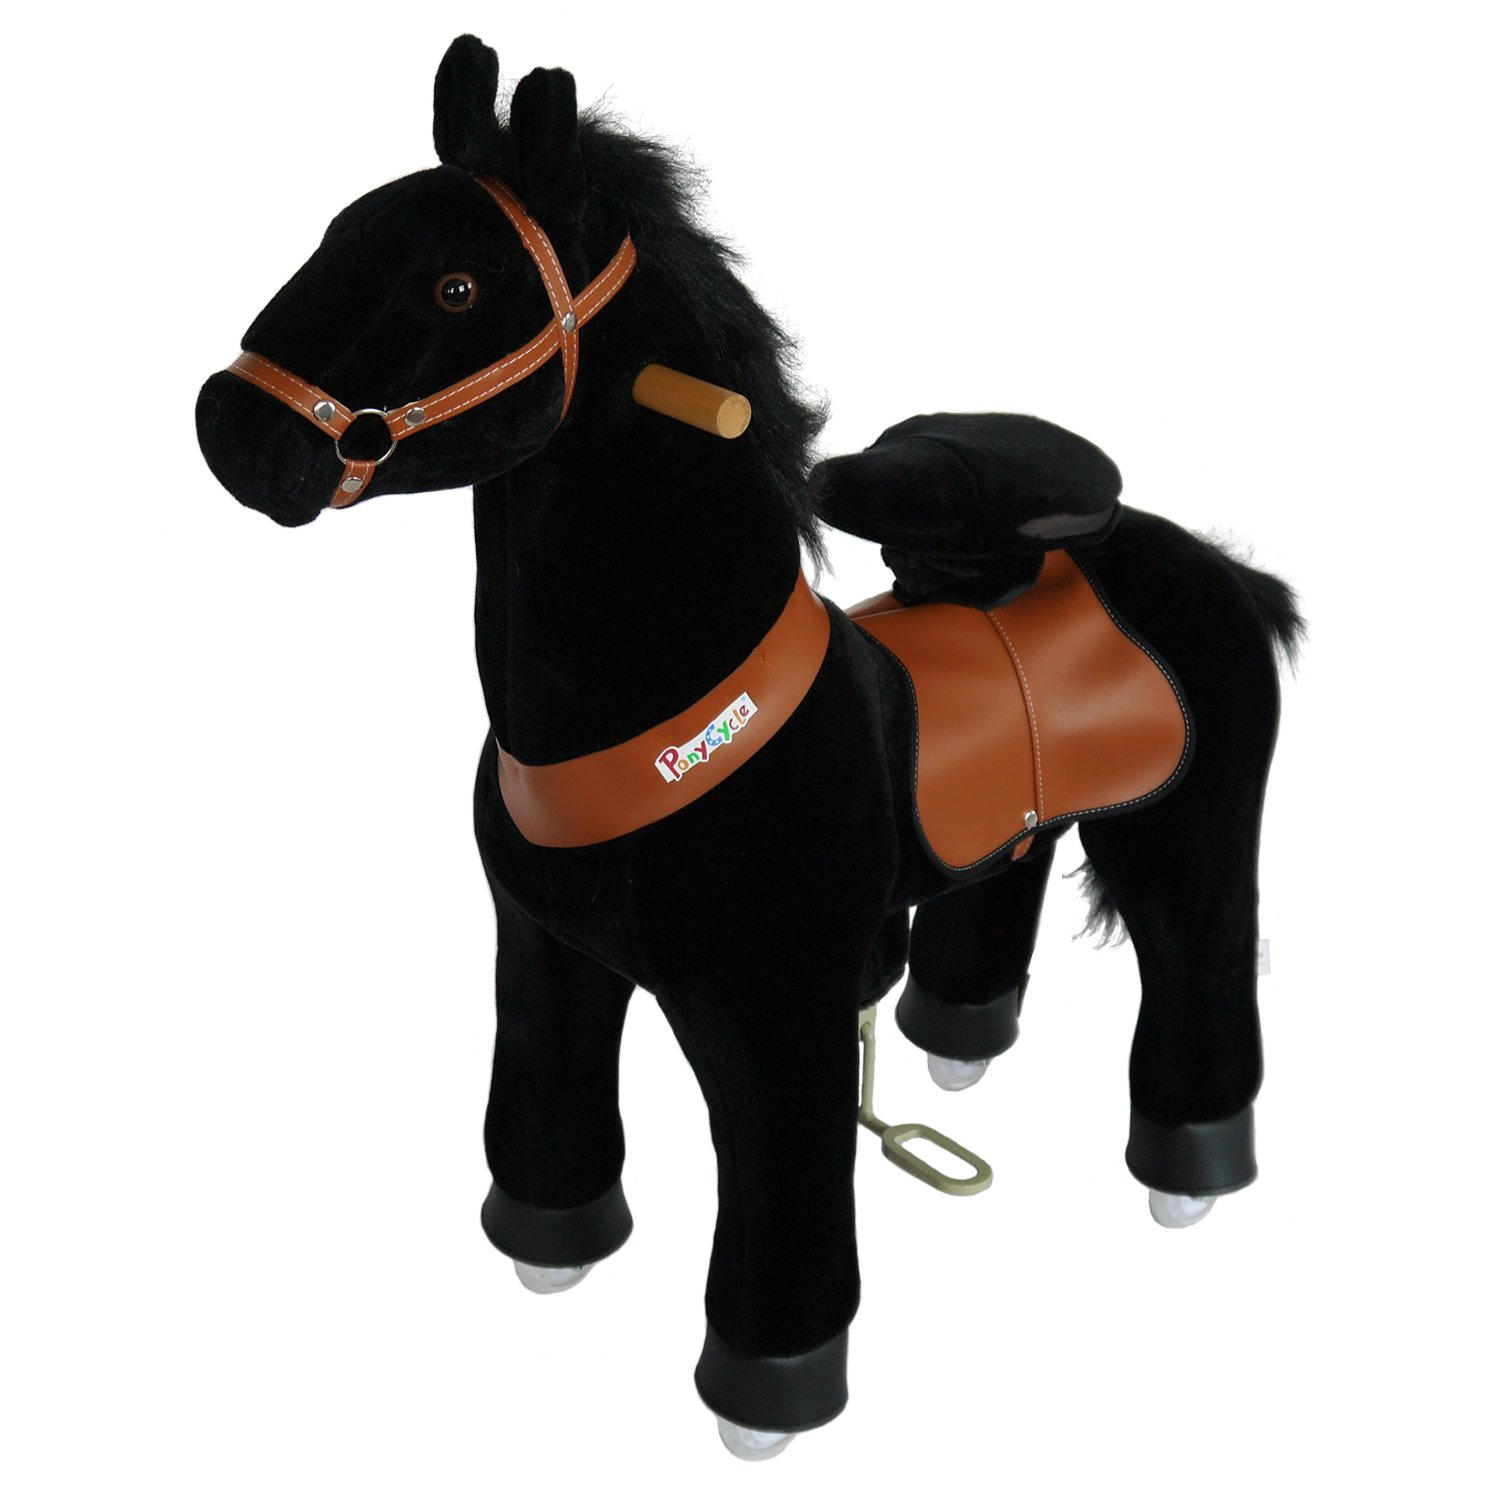 PonyCycle Official Walking Horse Black Giddy up Pony Plush Toy Ride on Animal for Age 4-9 Years Medium Size - N4183